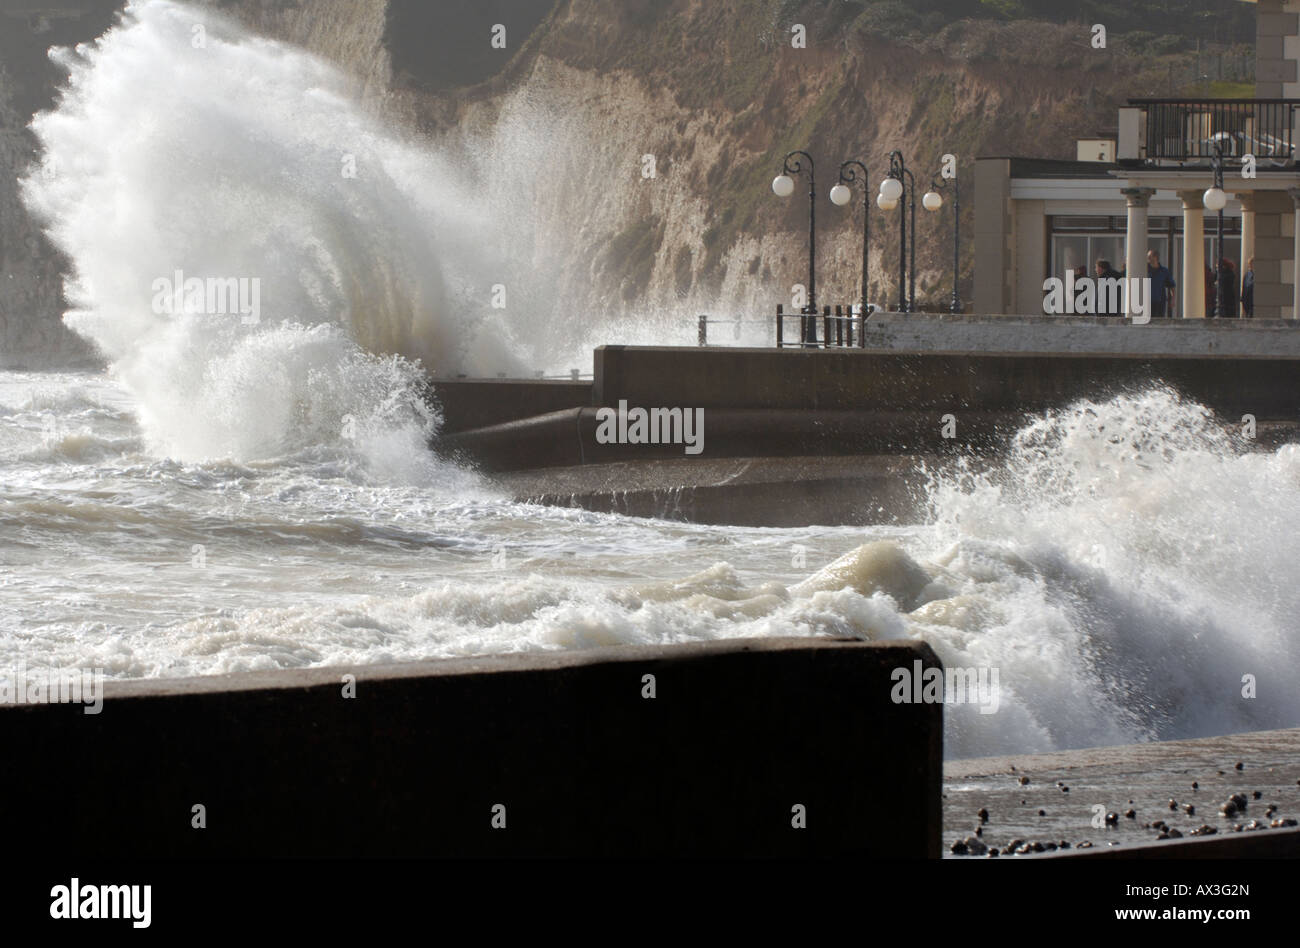 waves breaking over the sea wal in a storm at freshwater bay on the isle of wight. The sea smashing coastal defences - Stock Image